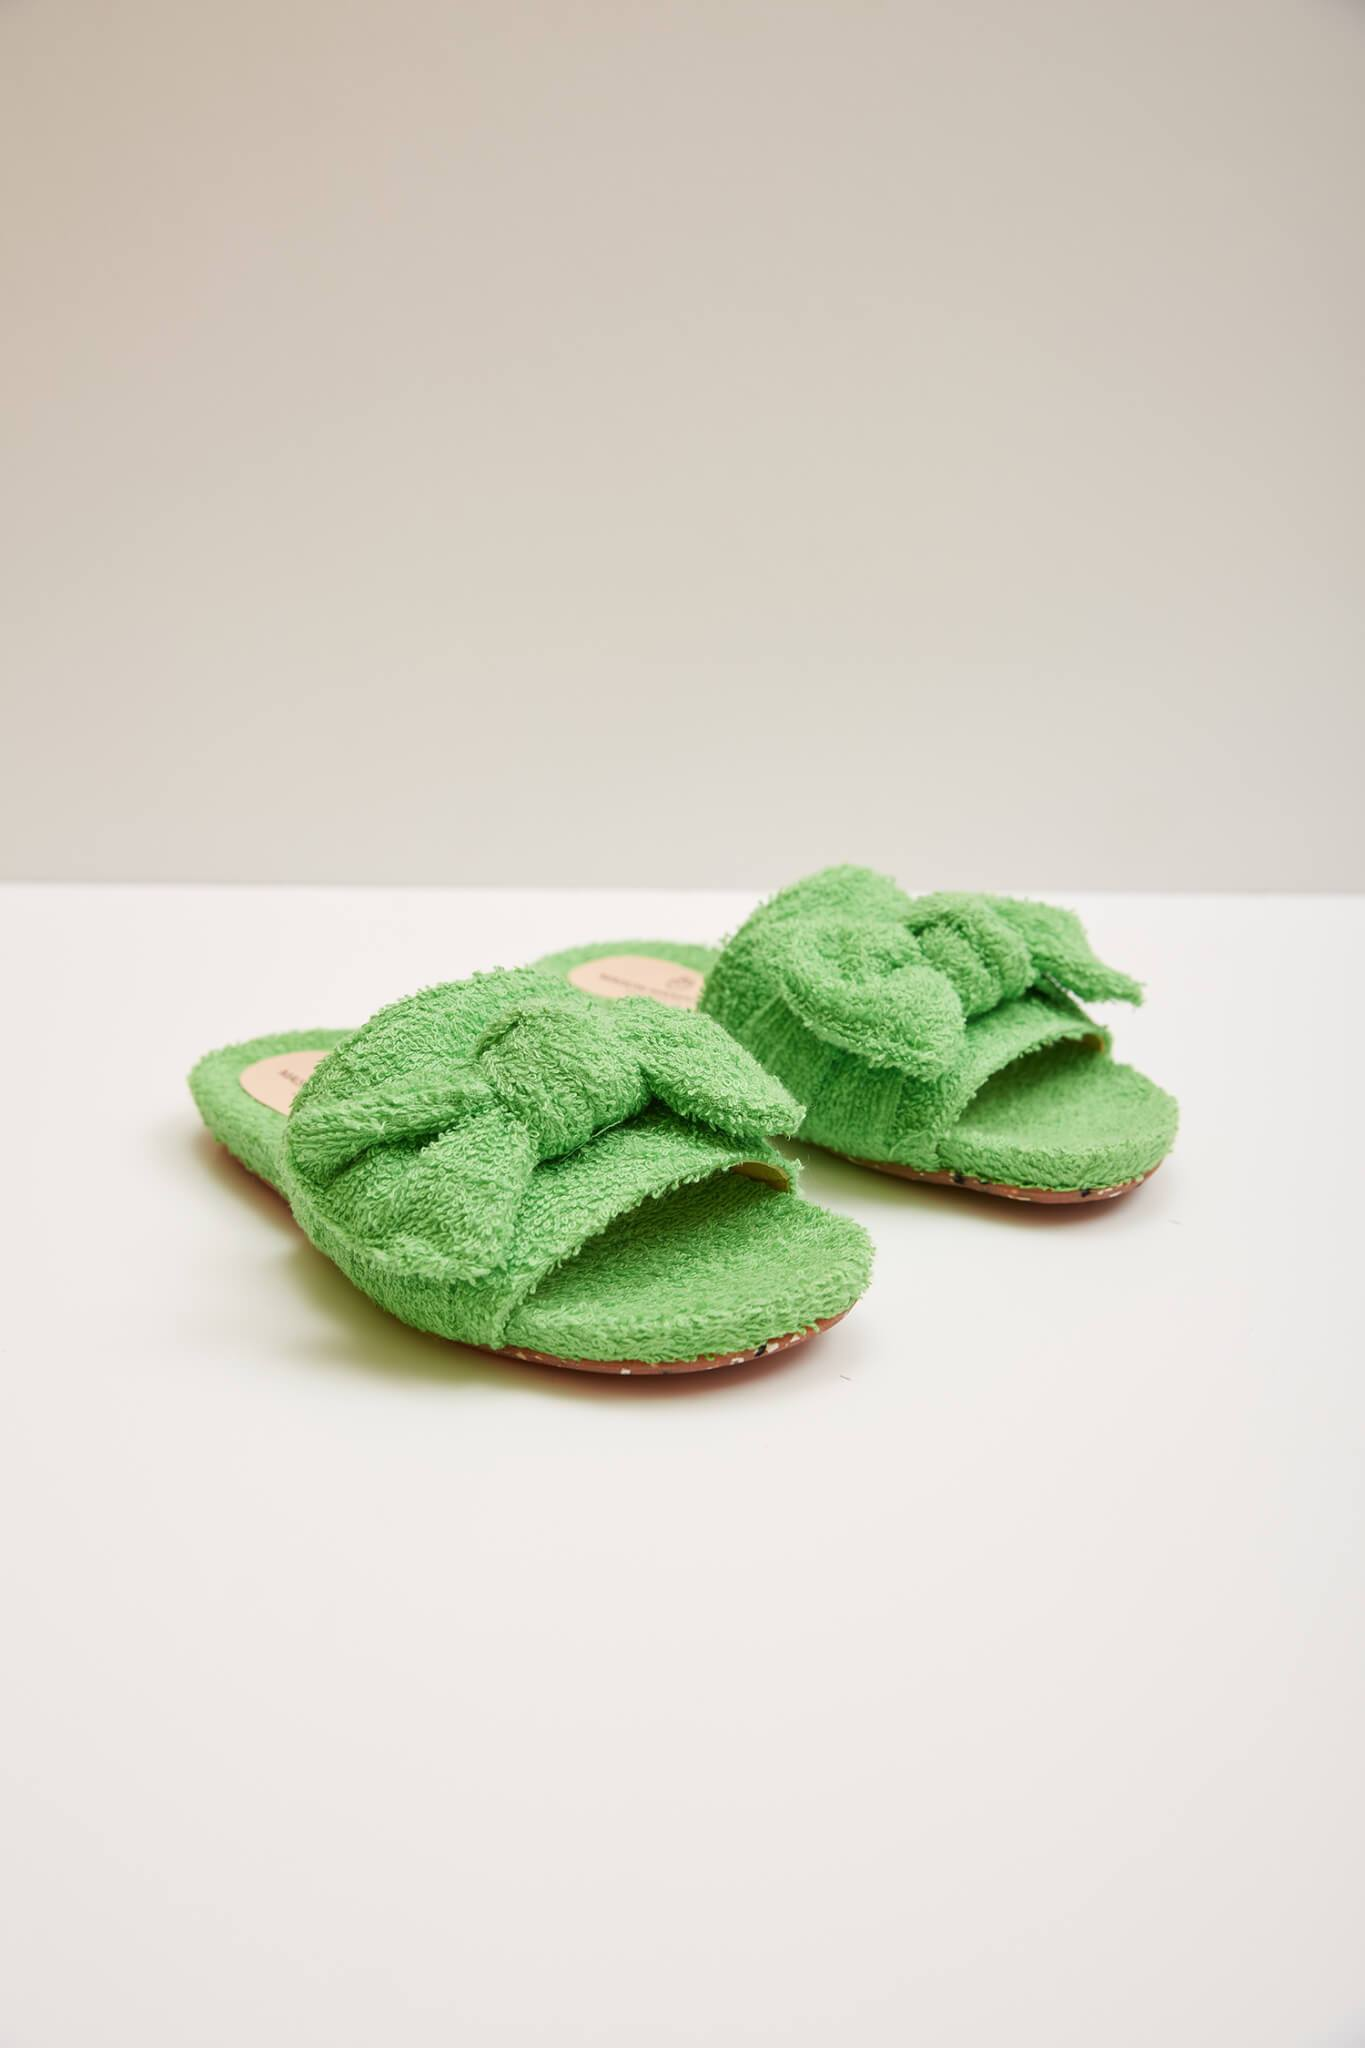 Maison Mangostan Shoes Teen Morango Green Towel Maison Mangostan | Zirkuss